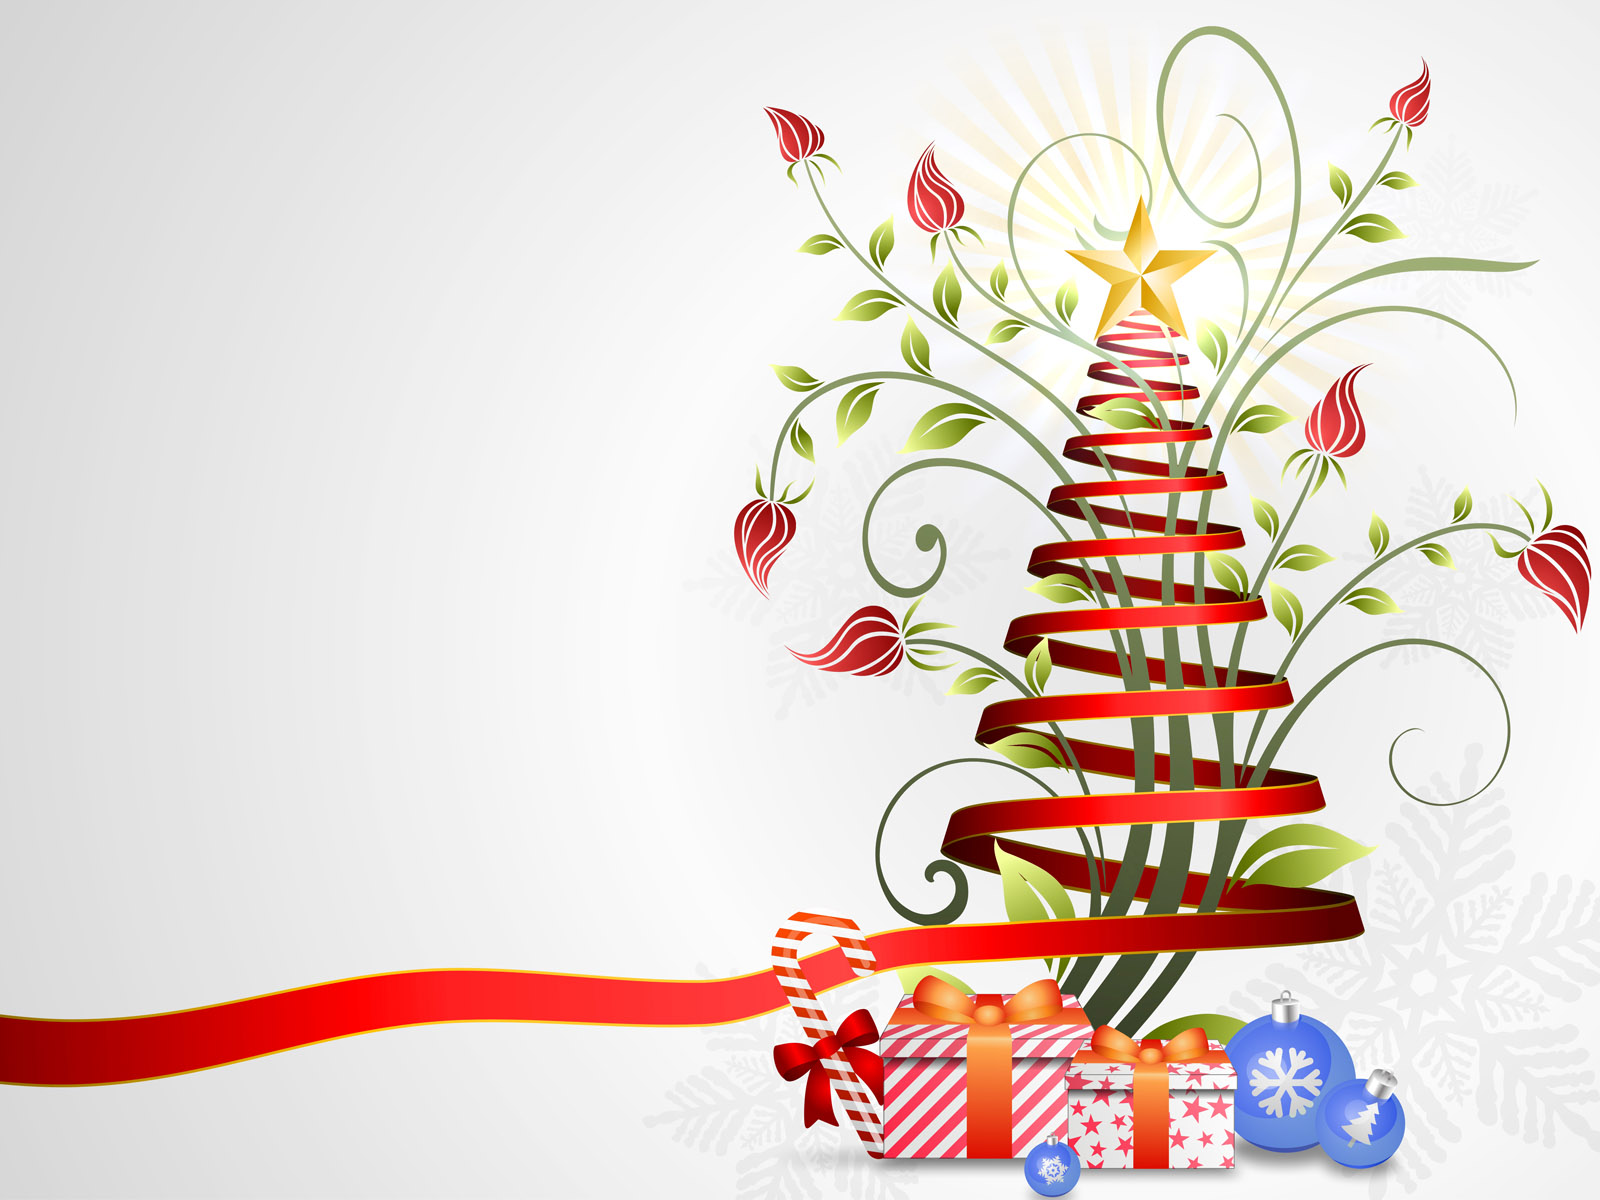 Free Clipart Christmas Backgrounds.